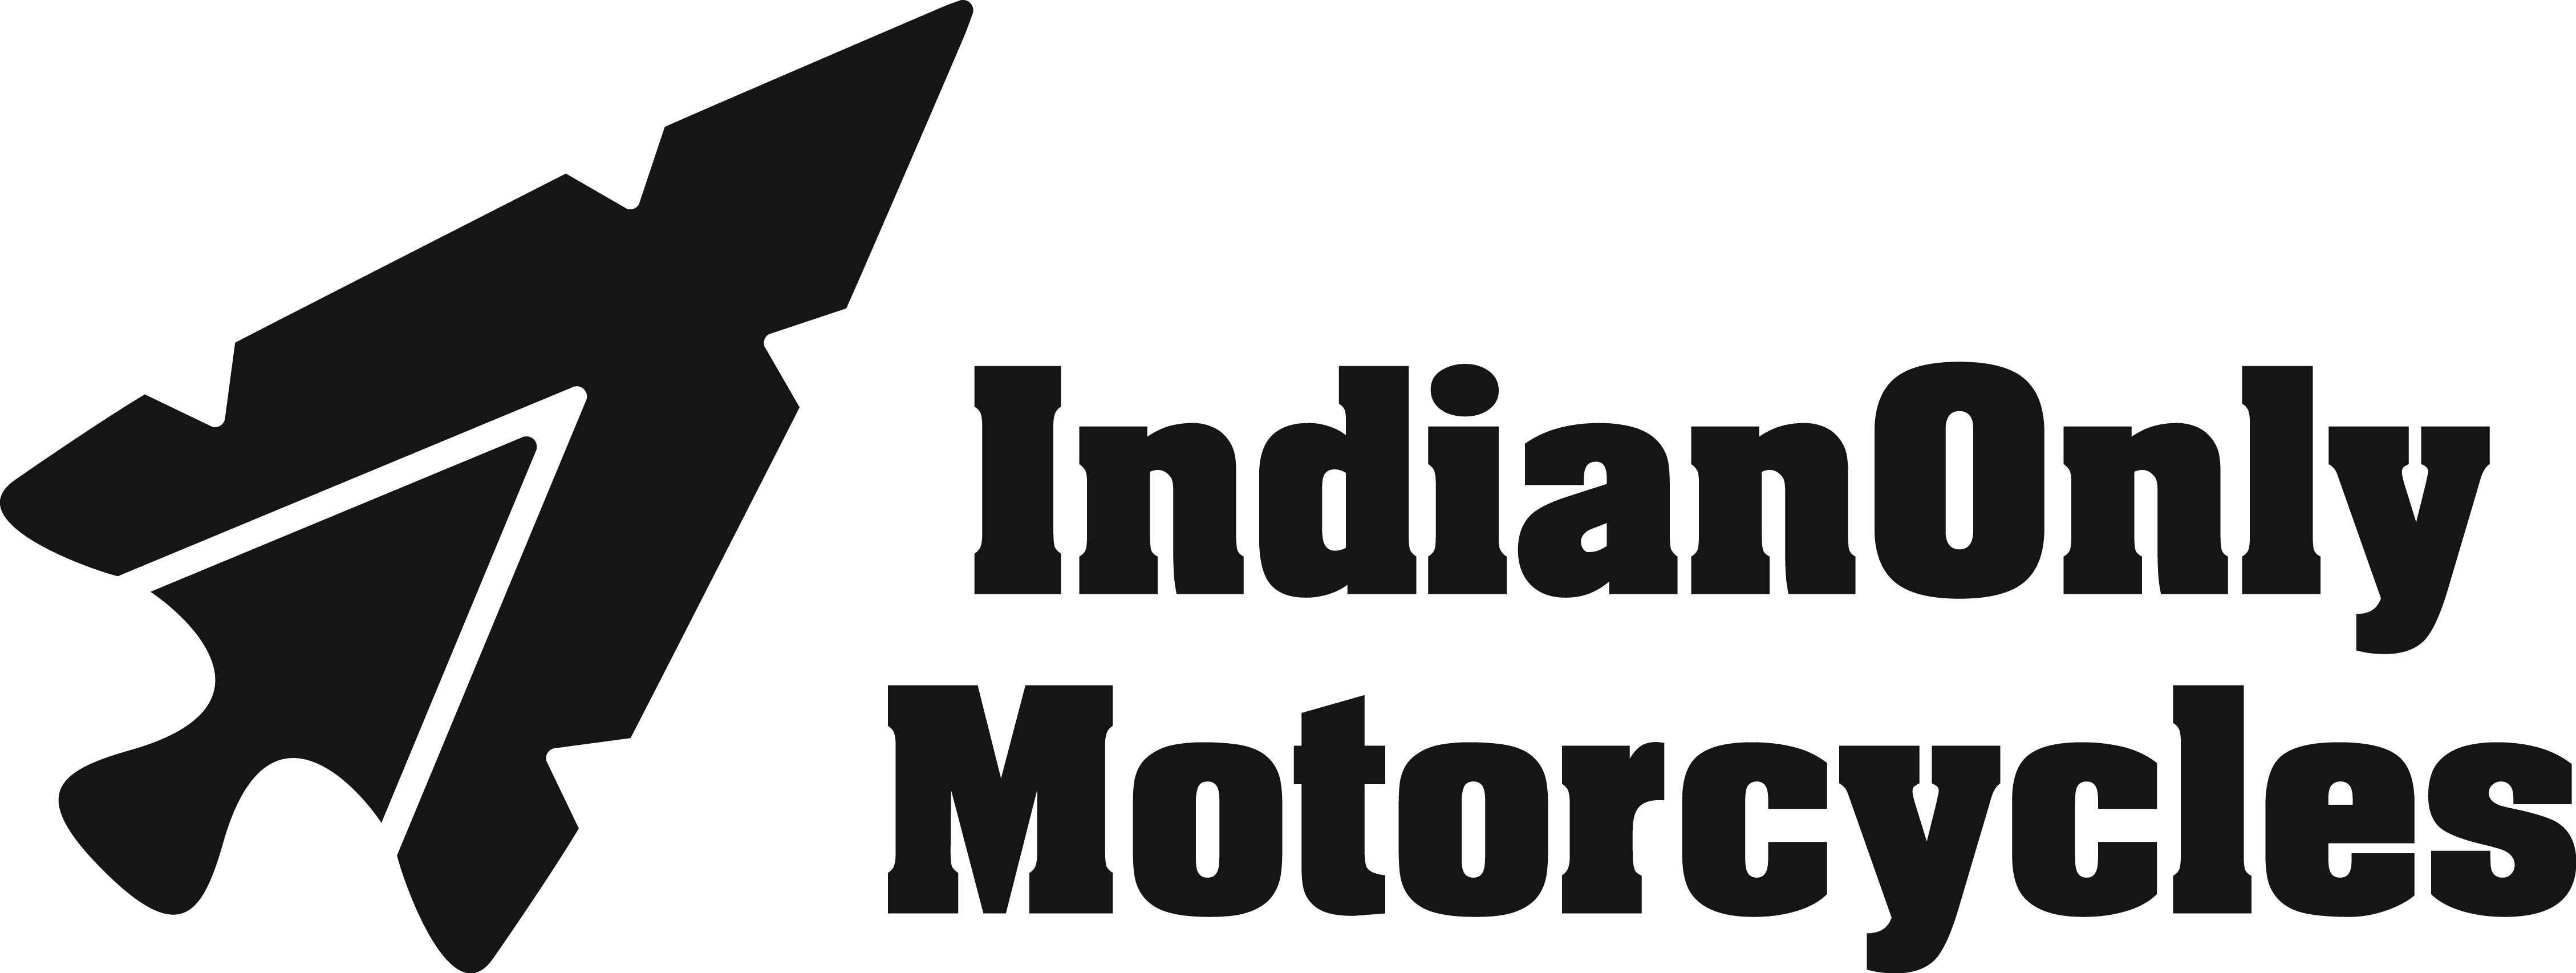 Indian Motorcycle Only Logo Dianonlymotorcycles